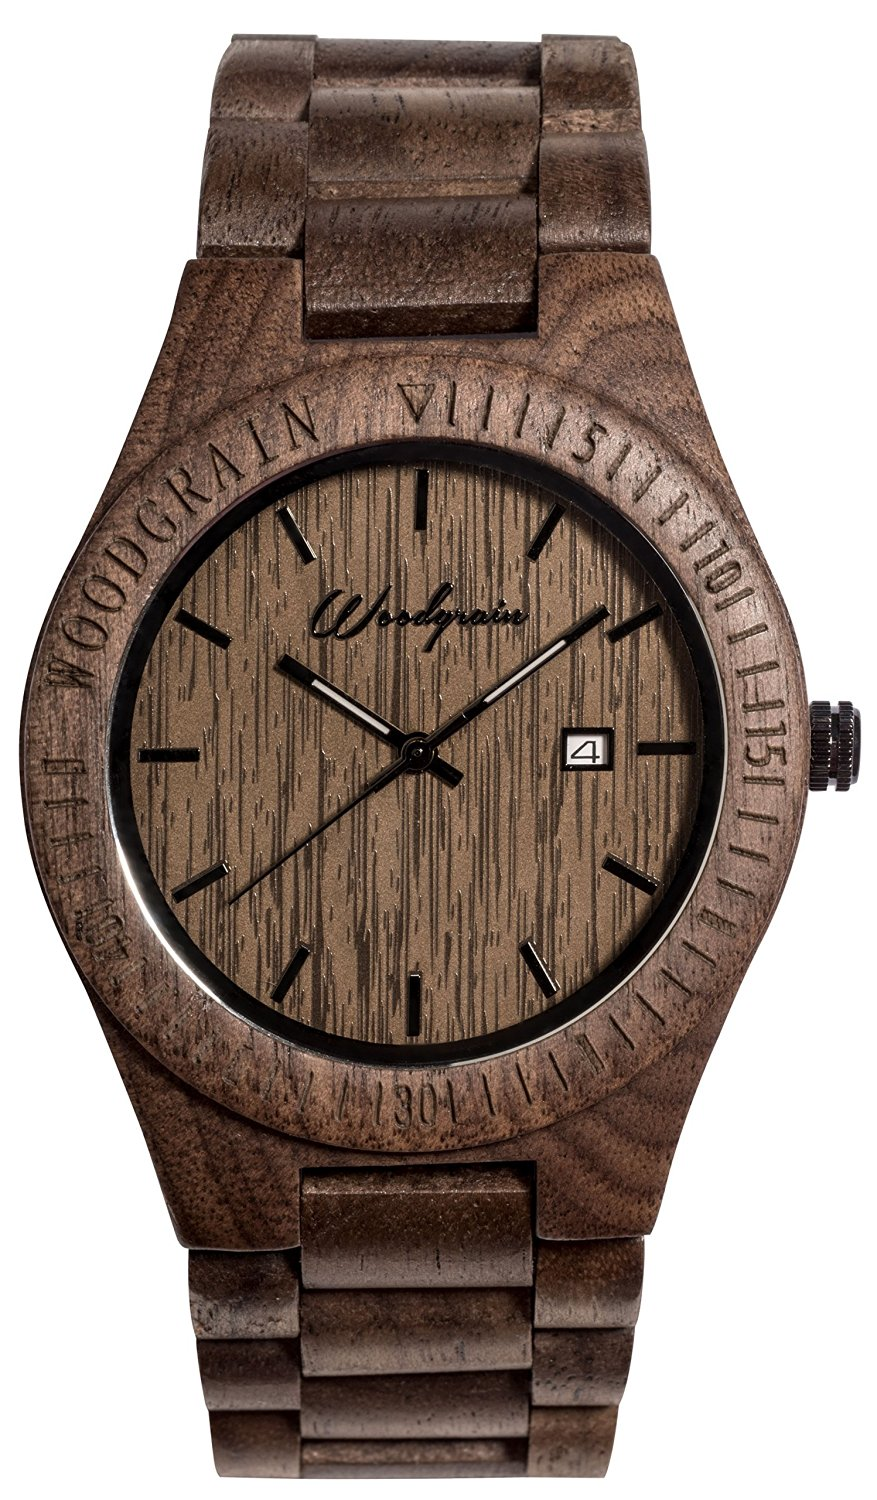 synchrony grain amber image watches wood product products